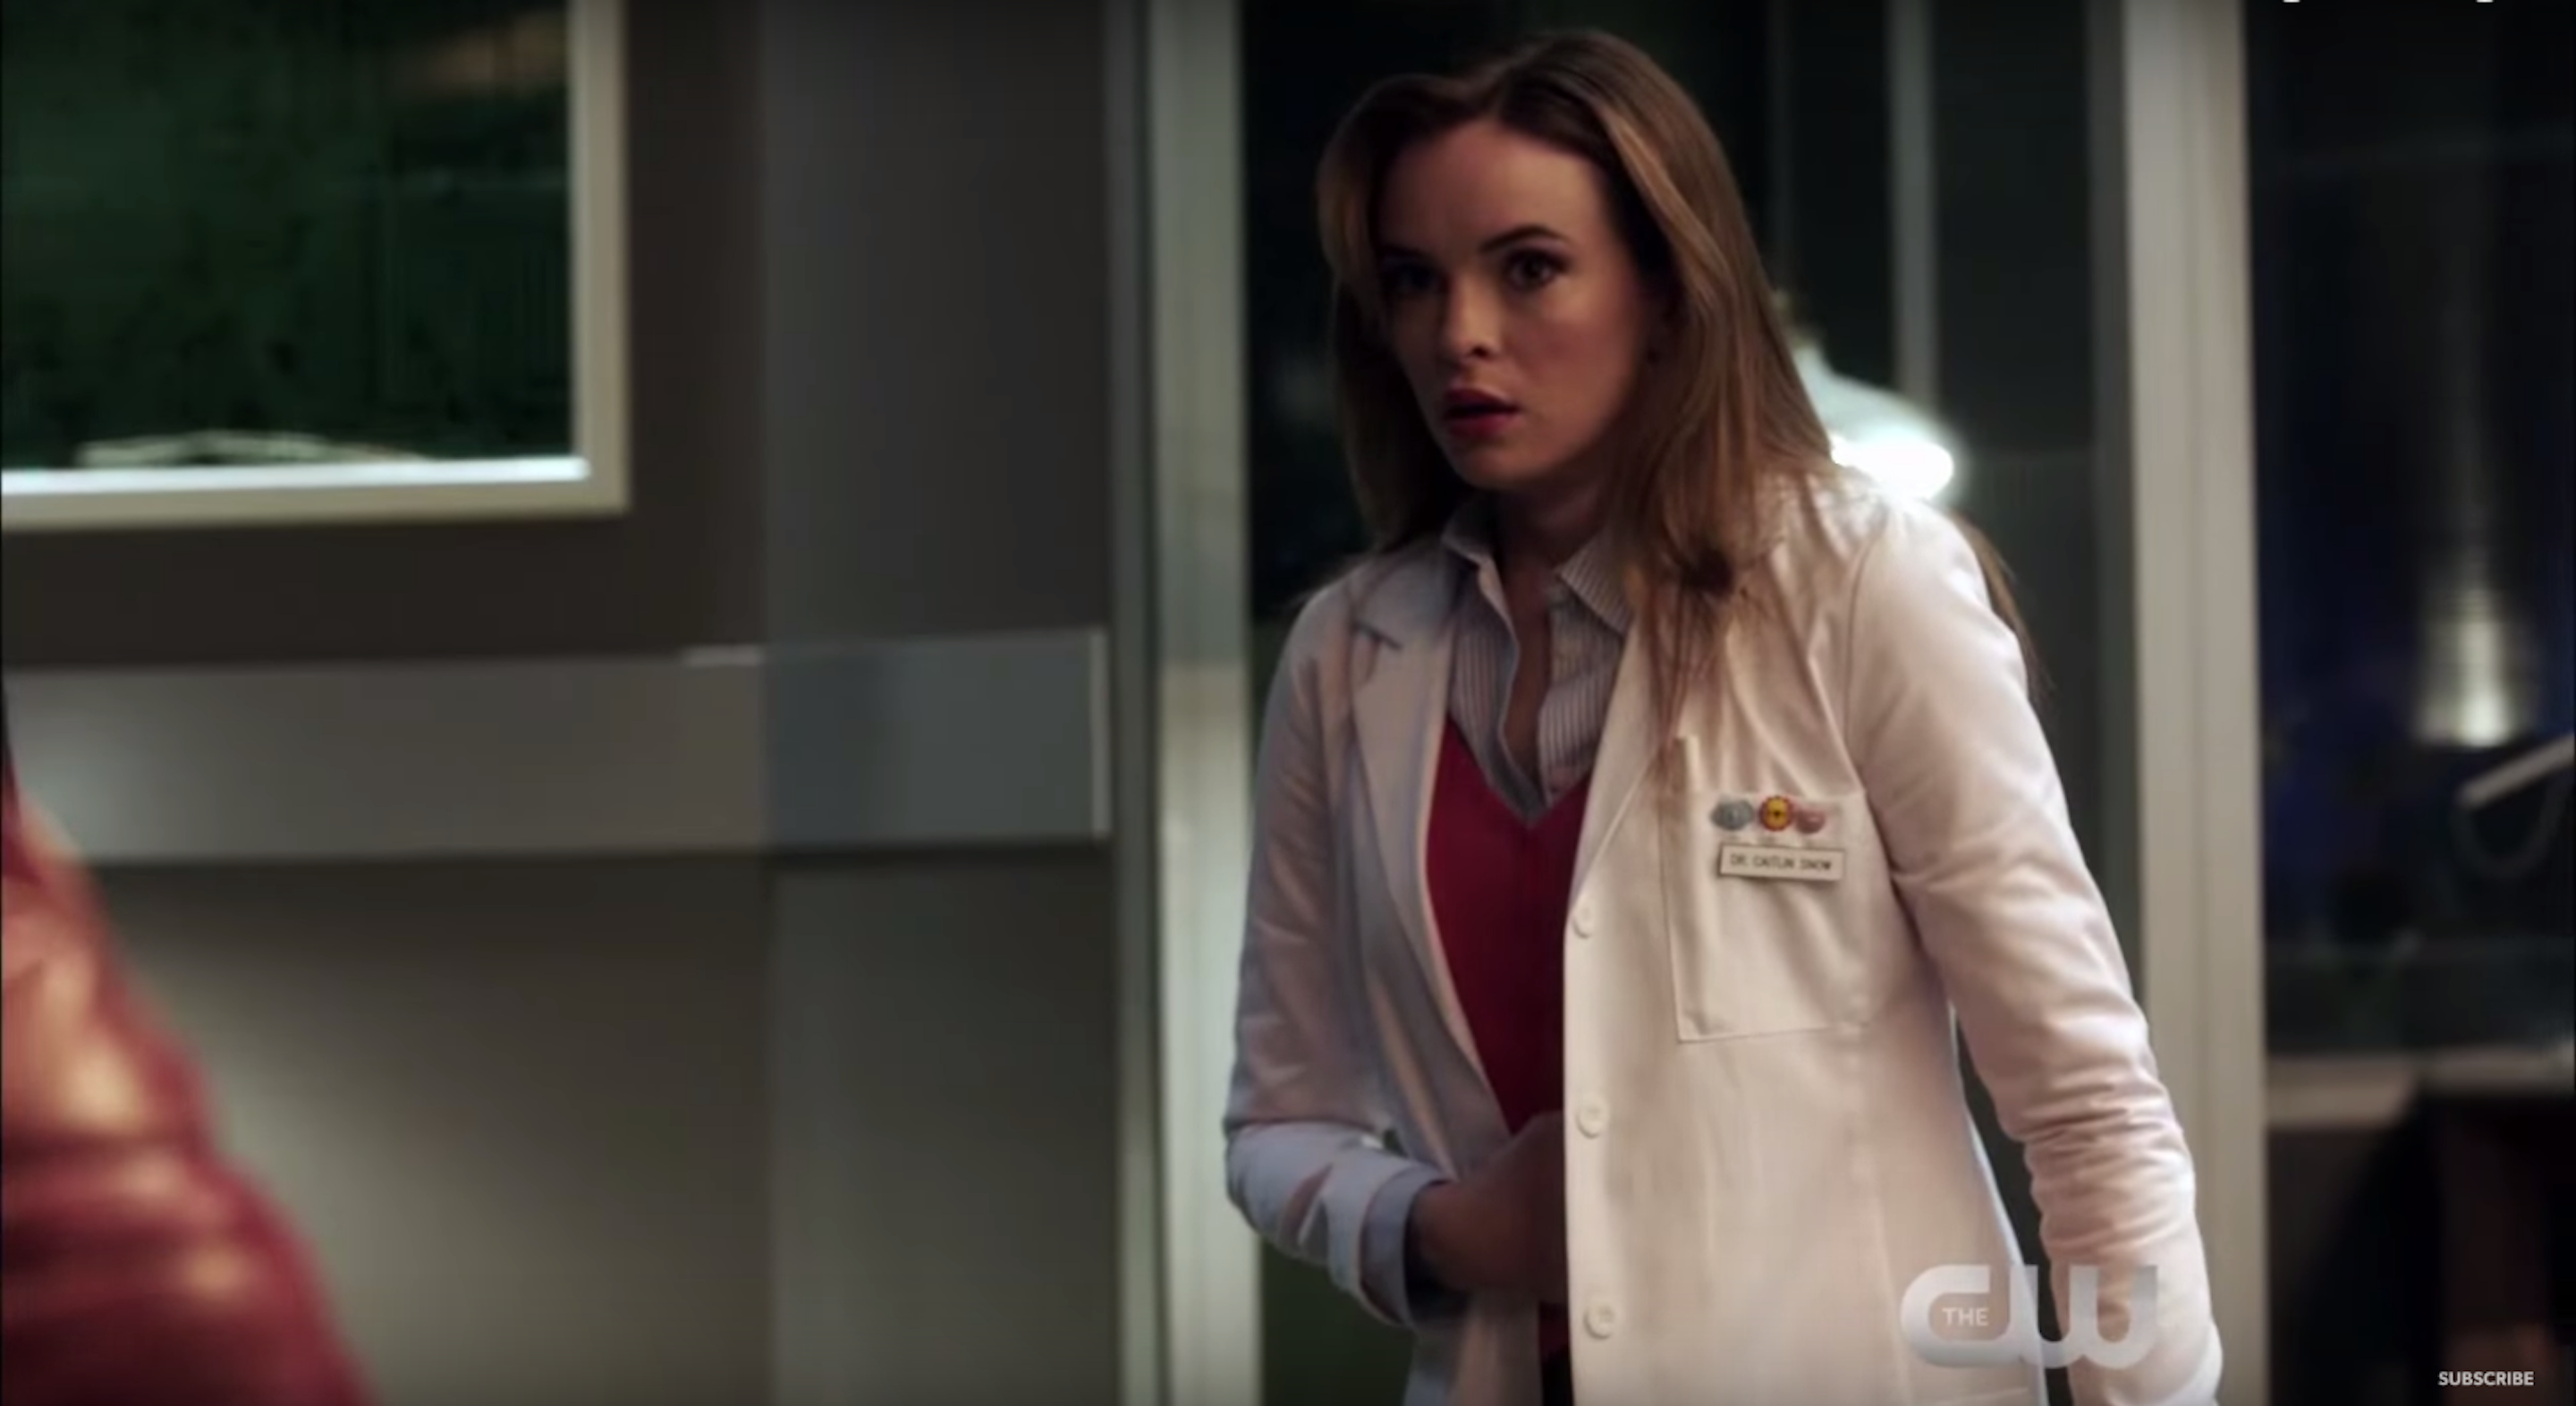 Caitlin Snow Danielle Panabaker The Flash Season 3